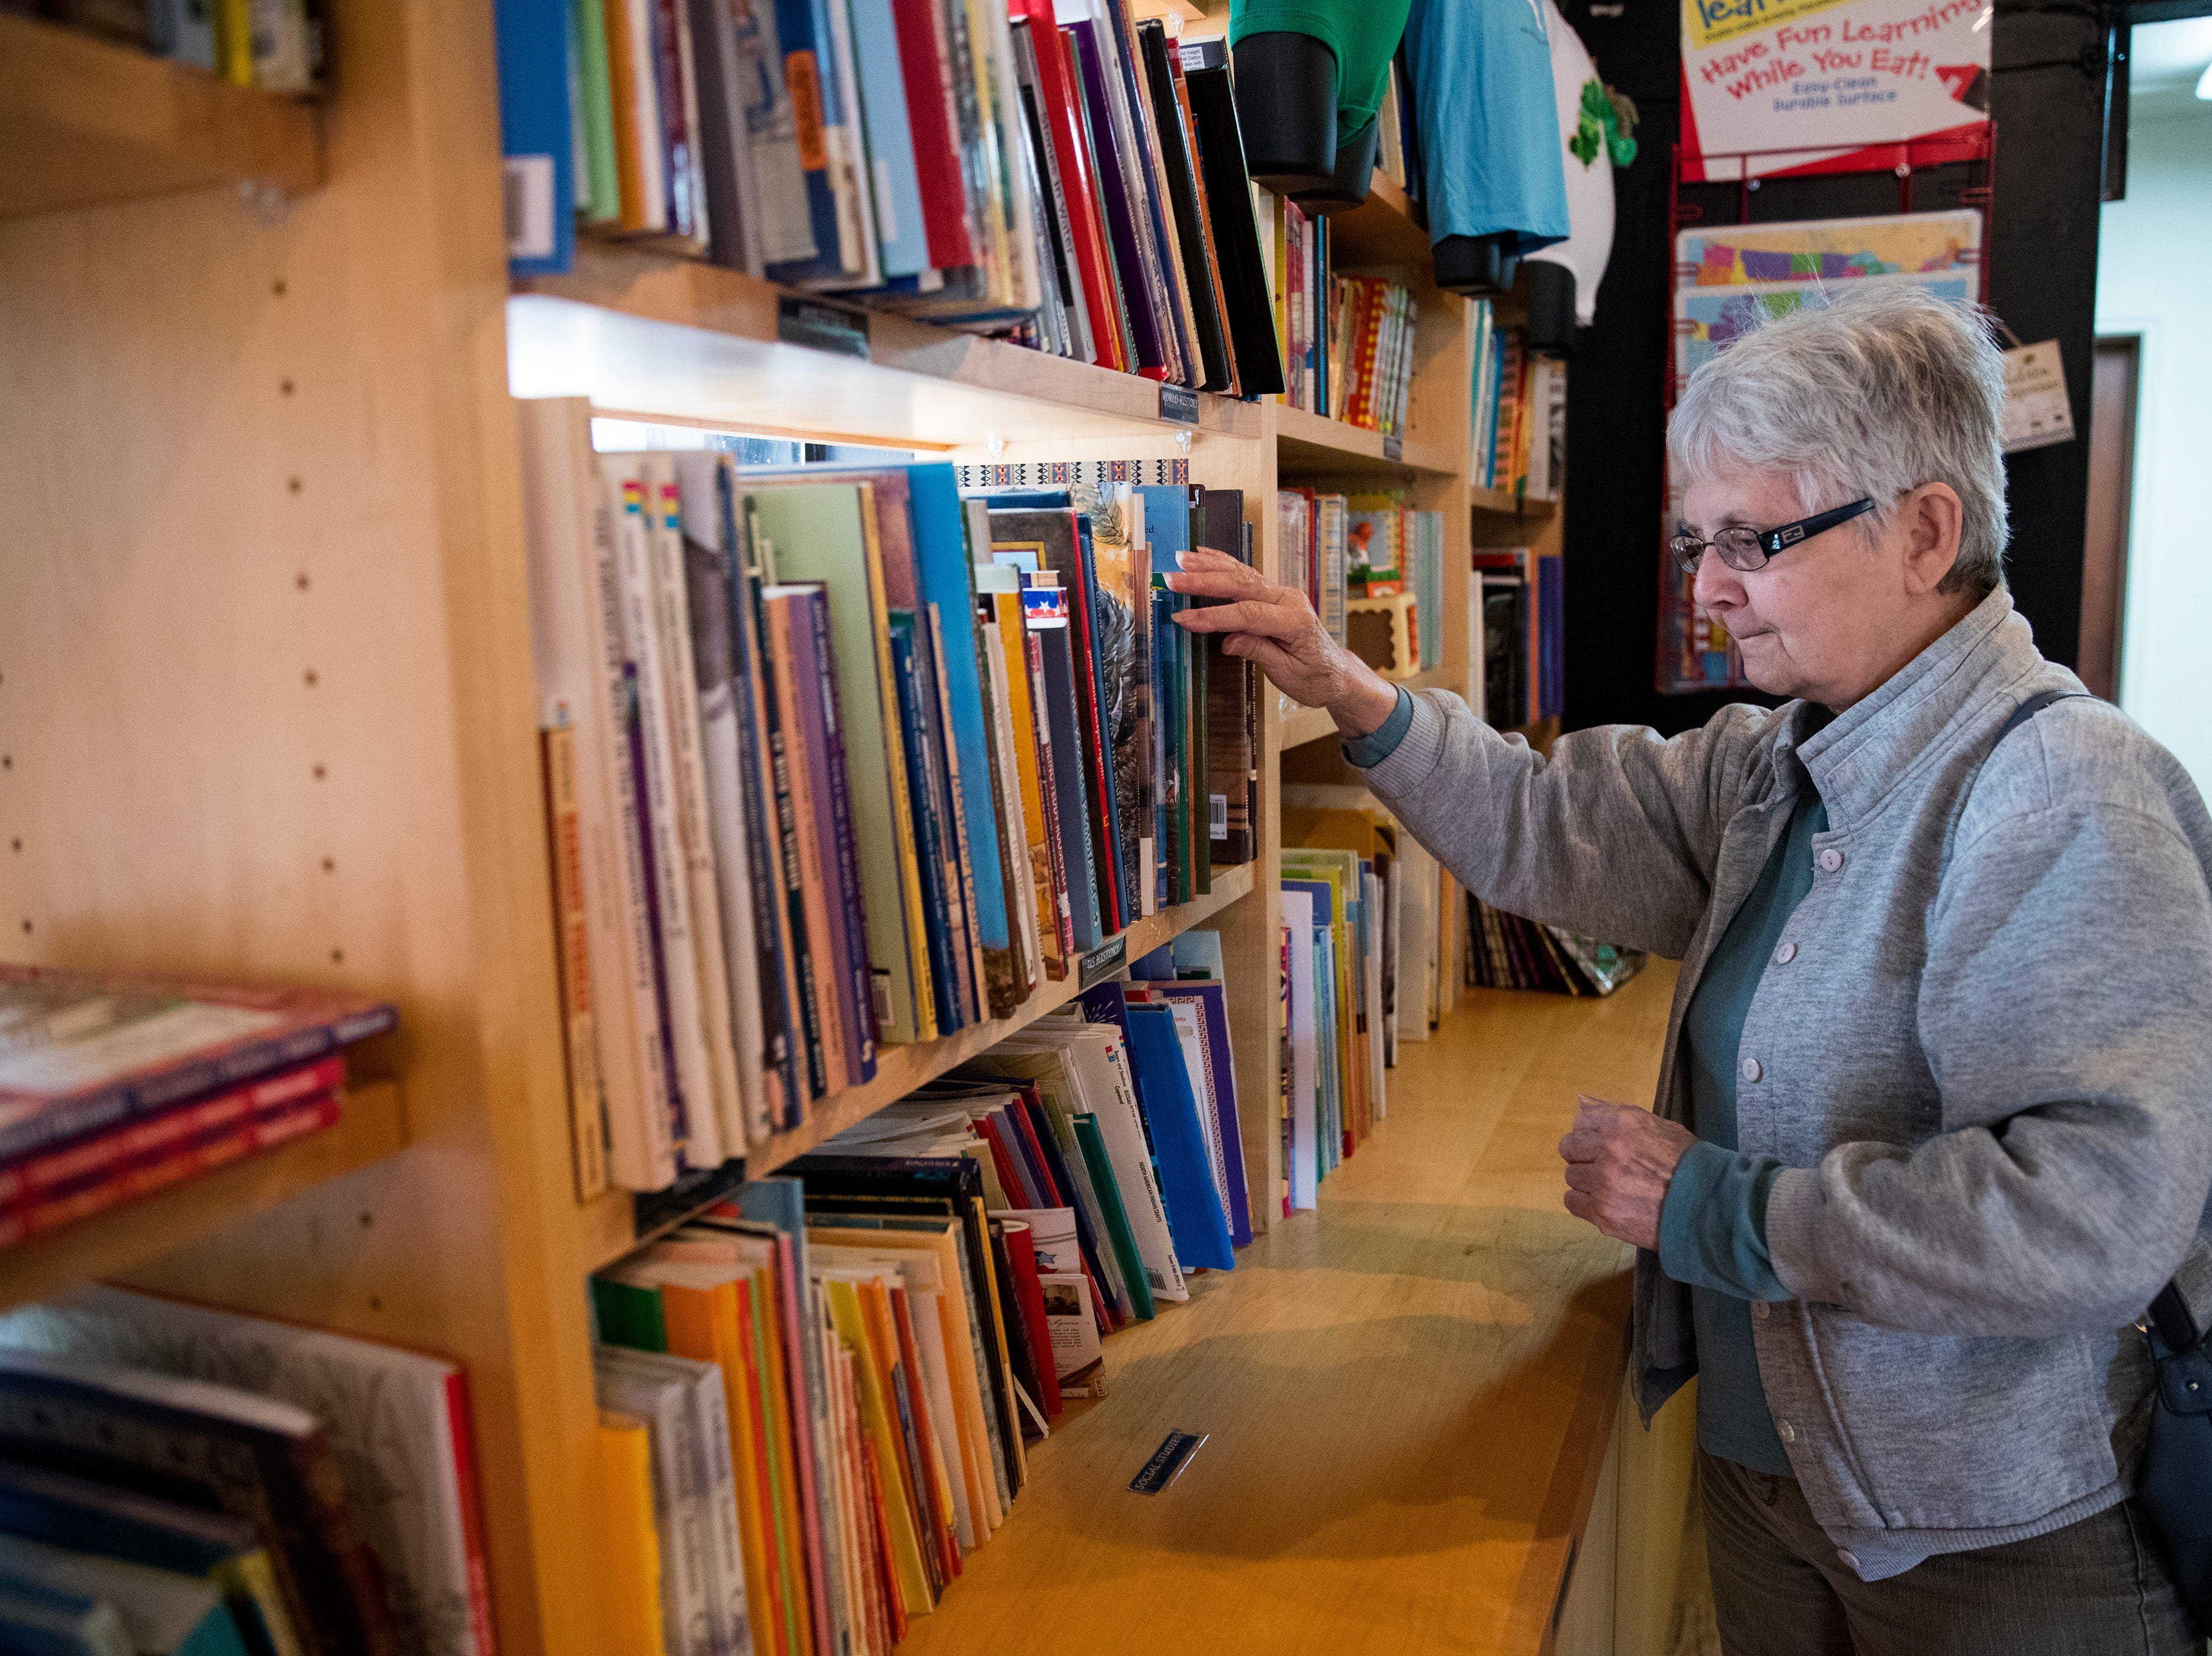 "Sharon Purcell shops at By the Book last month. She said she likes shopping at the bookstore because it is an independent bookstore and she has several grandchildren she shops for. ""The appeal of a locally owned bookstore is personalized, customized attention,"" she said."